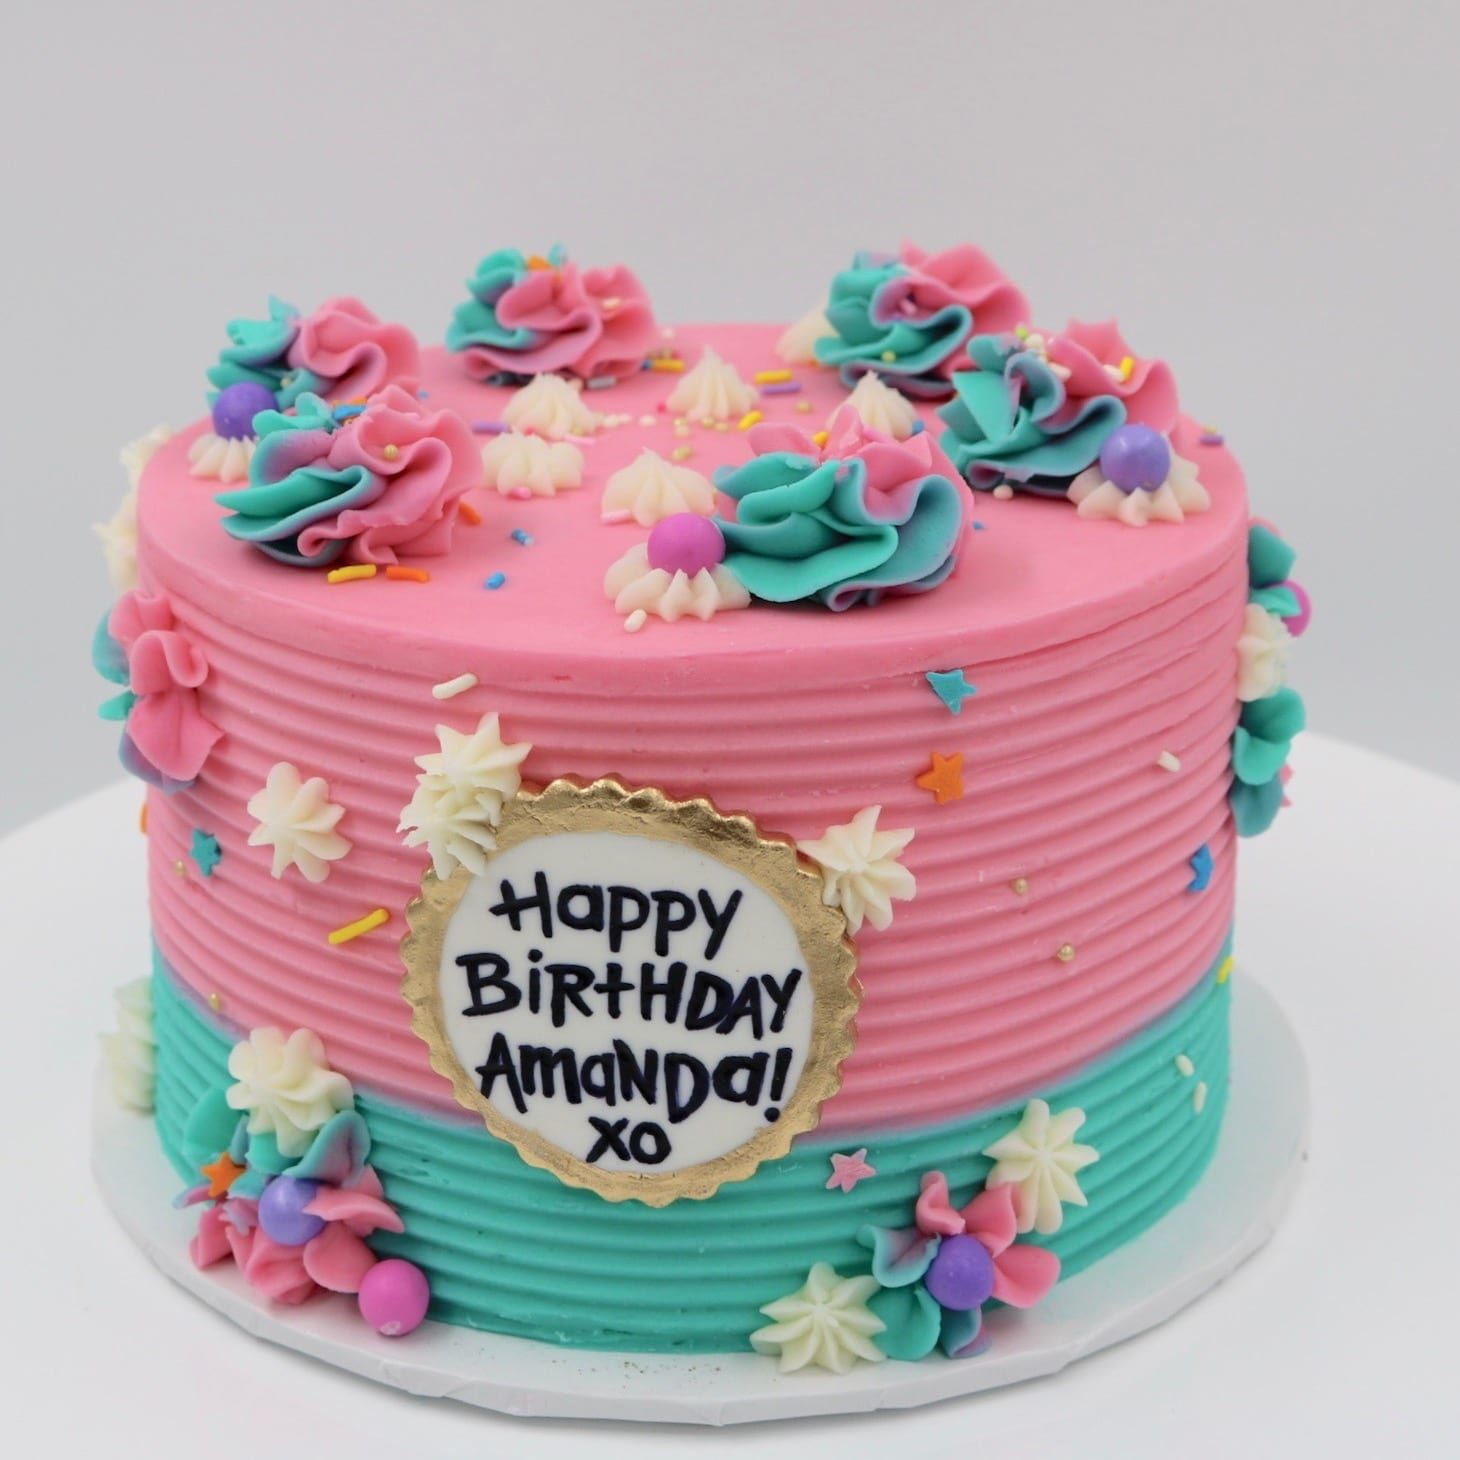 Swell Childrens Birthday Cakes That Are Unique And Delicious Cake Funny Birthday Cards Online Hendilapandamsfinfo